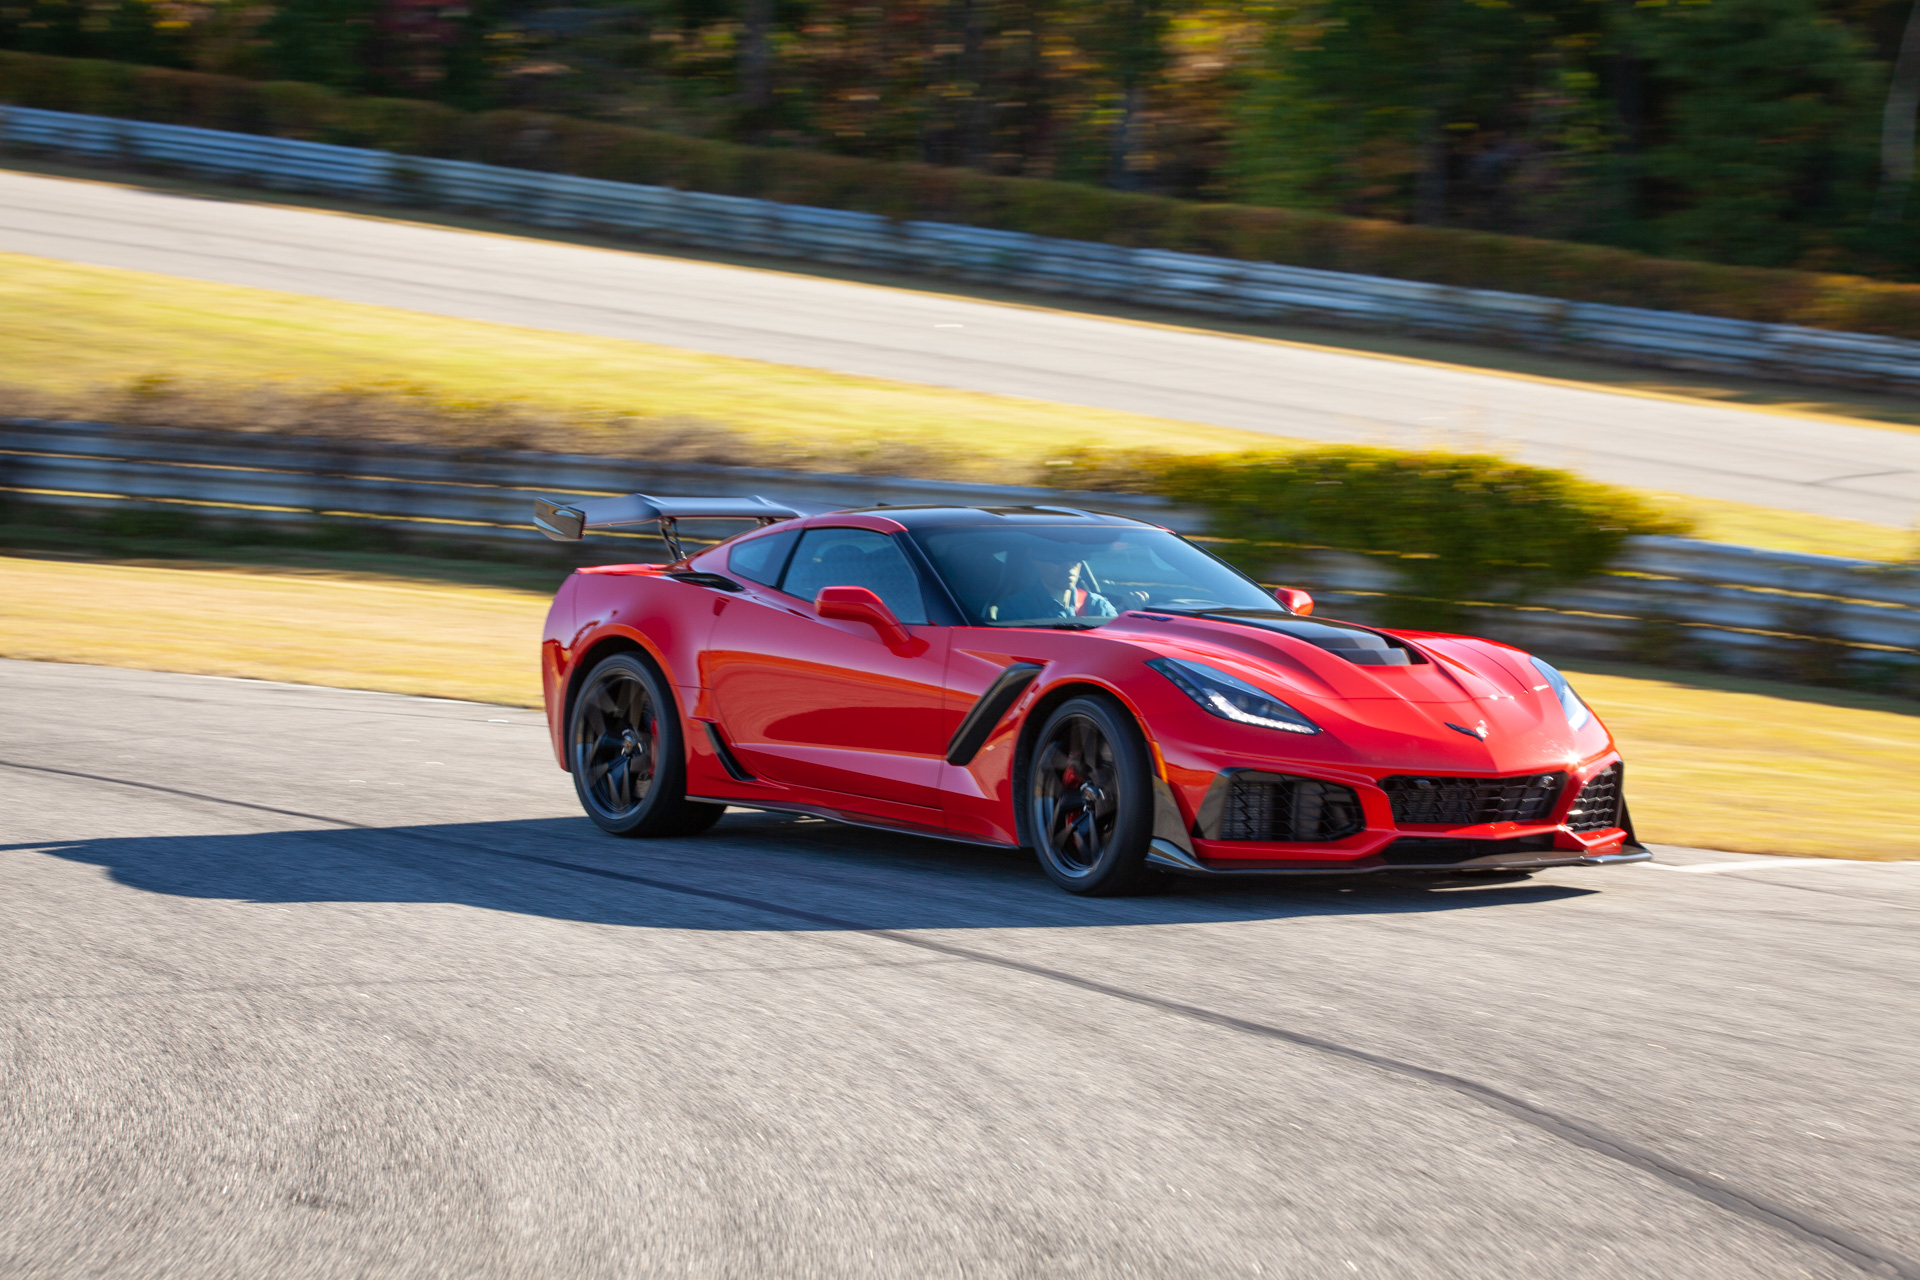 Corvette C7 Zr1 >> 10 Things You Need To Know About The 2019 Chevrolet Corvette Zr1